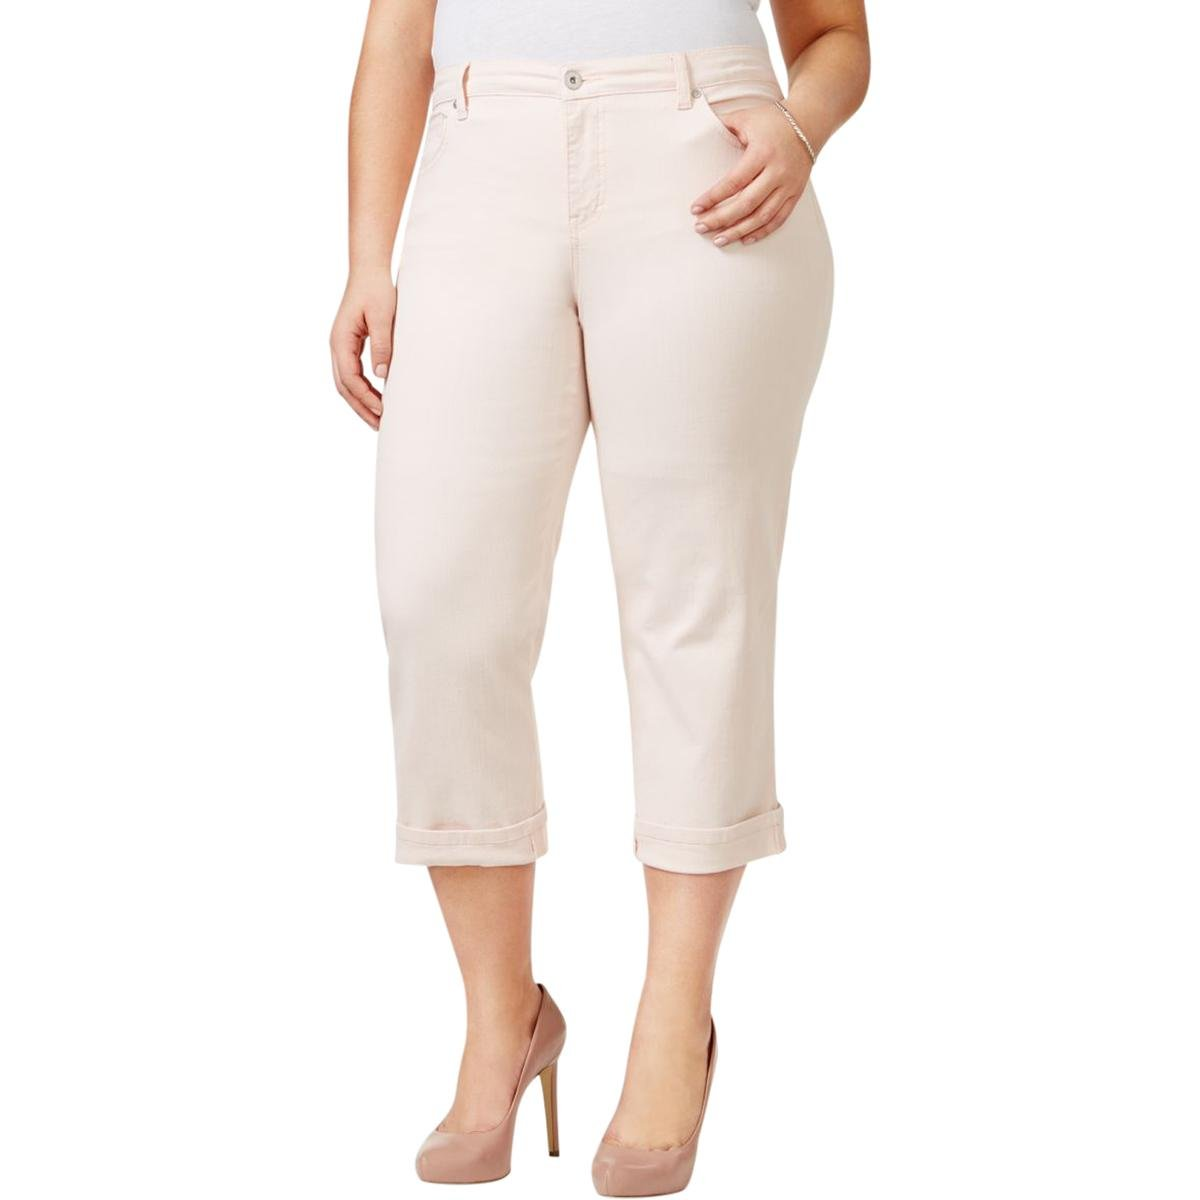 f7f3831b528 Style   Co. Womens Plus Capri Cotton Casual Pants Pink 24W at Amazon  Women s Clothing store